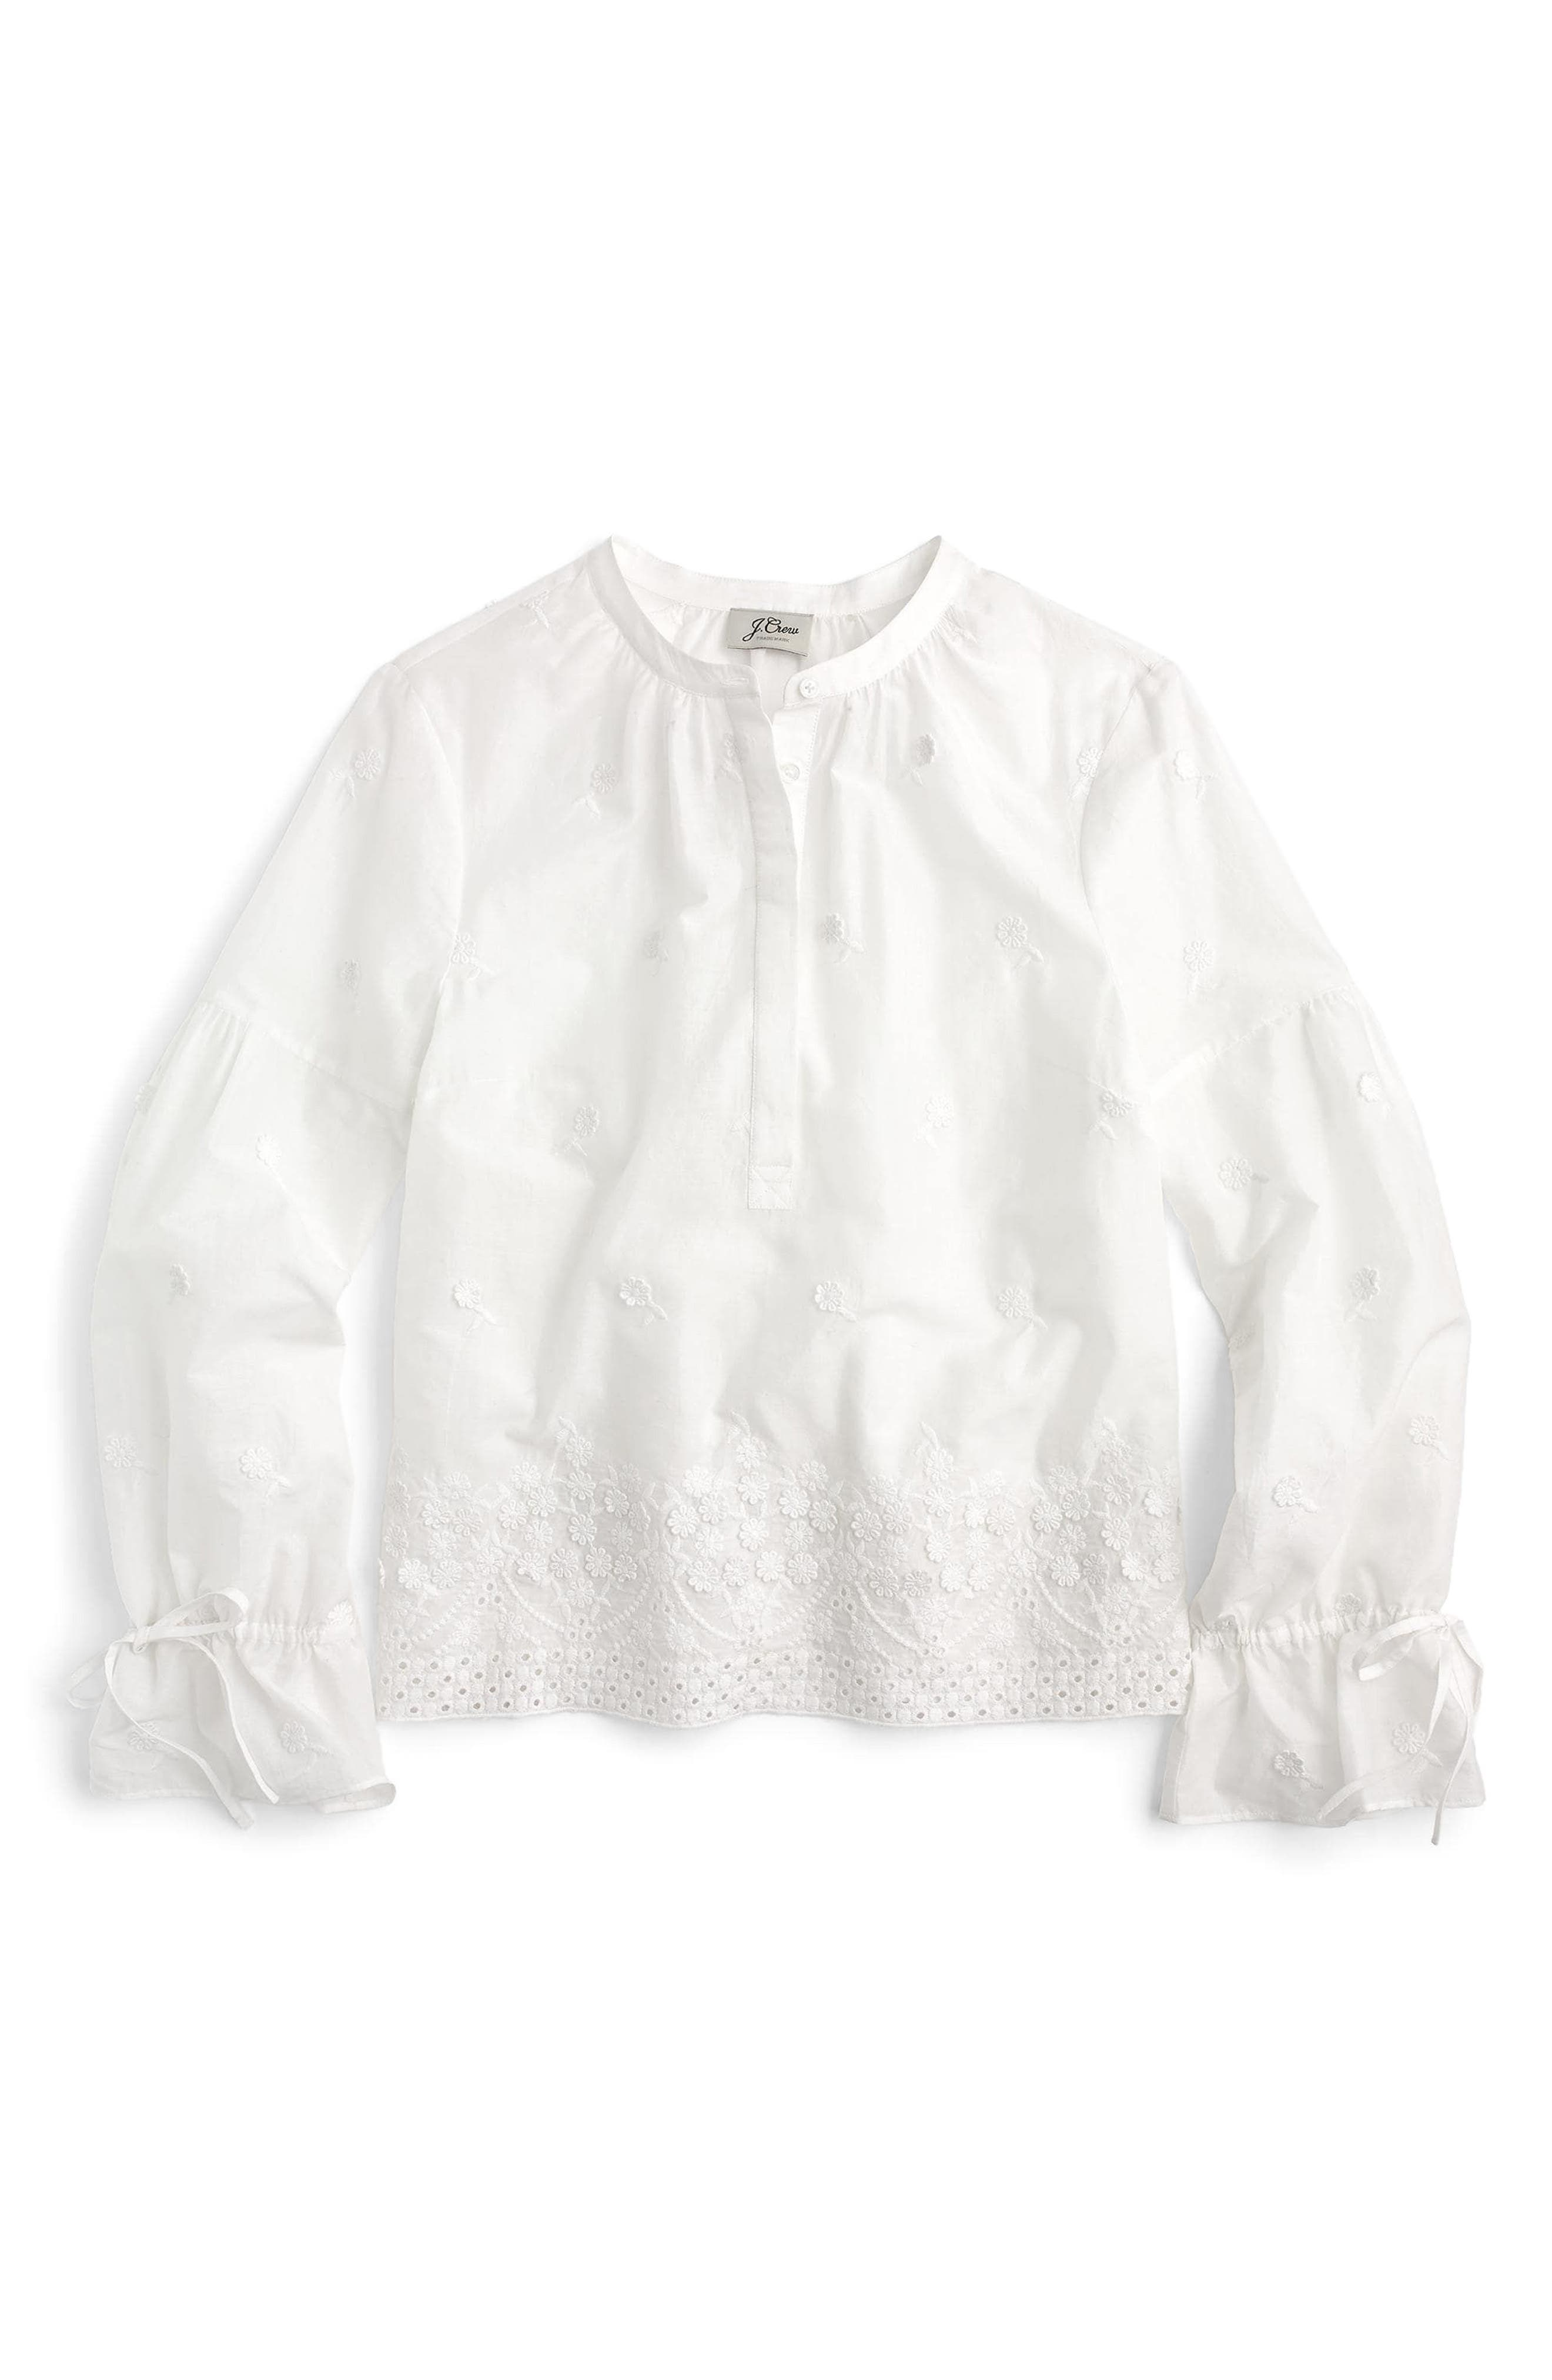 Floral Embroidered Popover Blouse,                             Main thumbnail 1, color,                             100